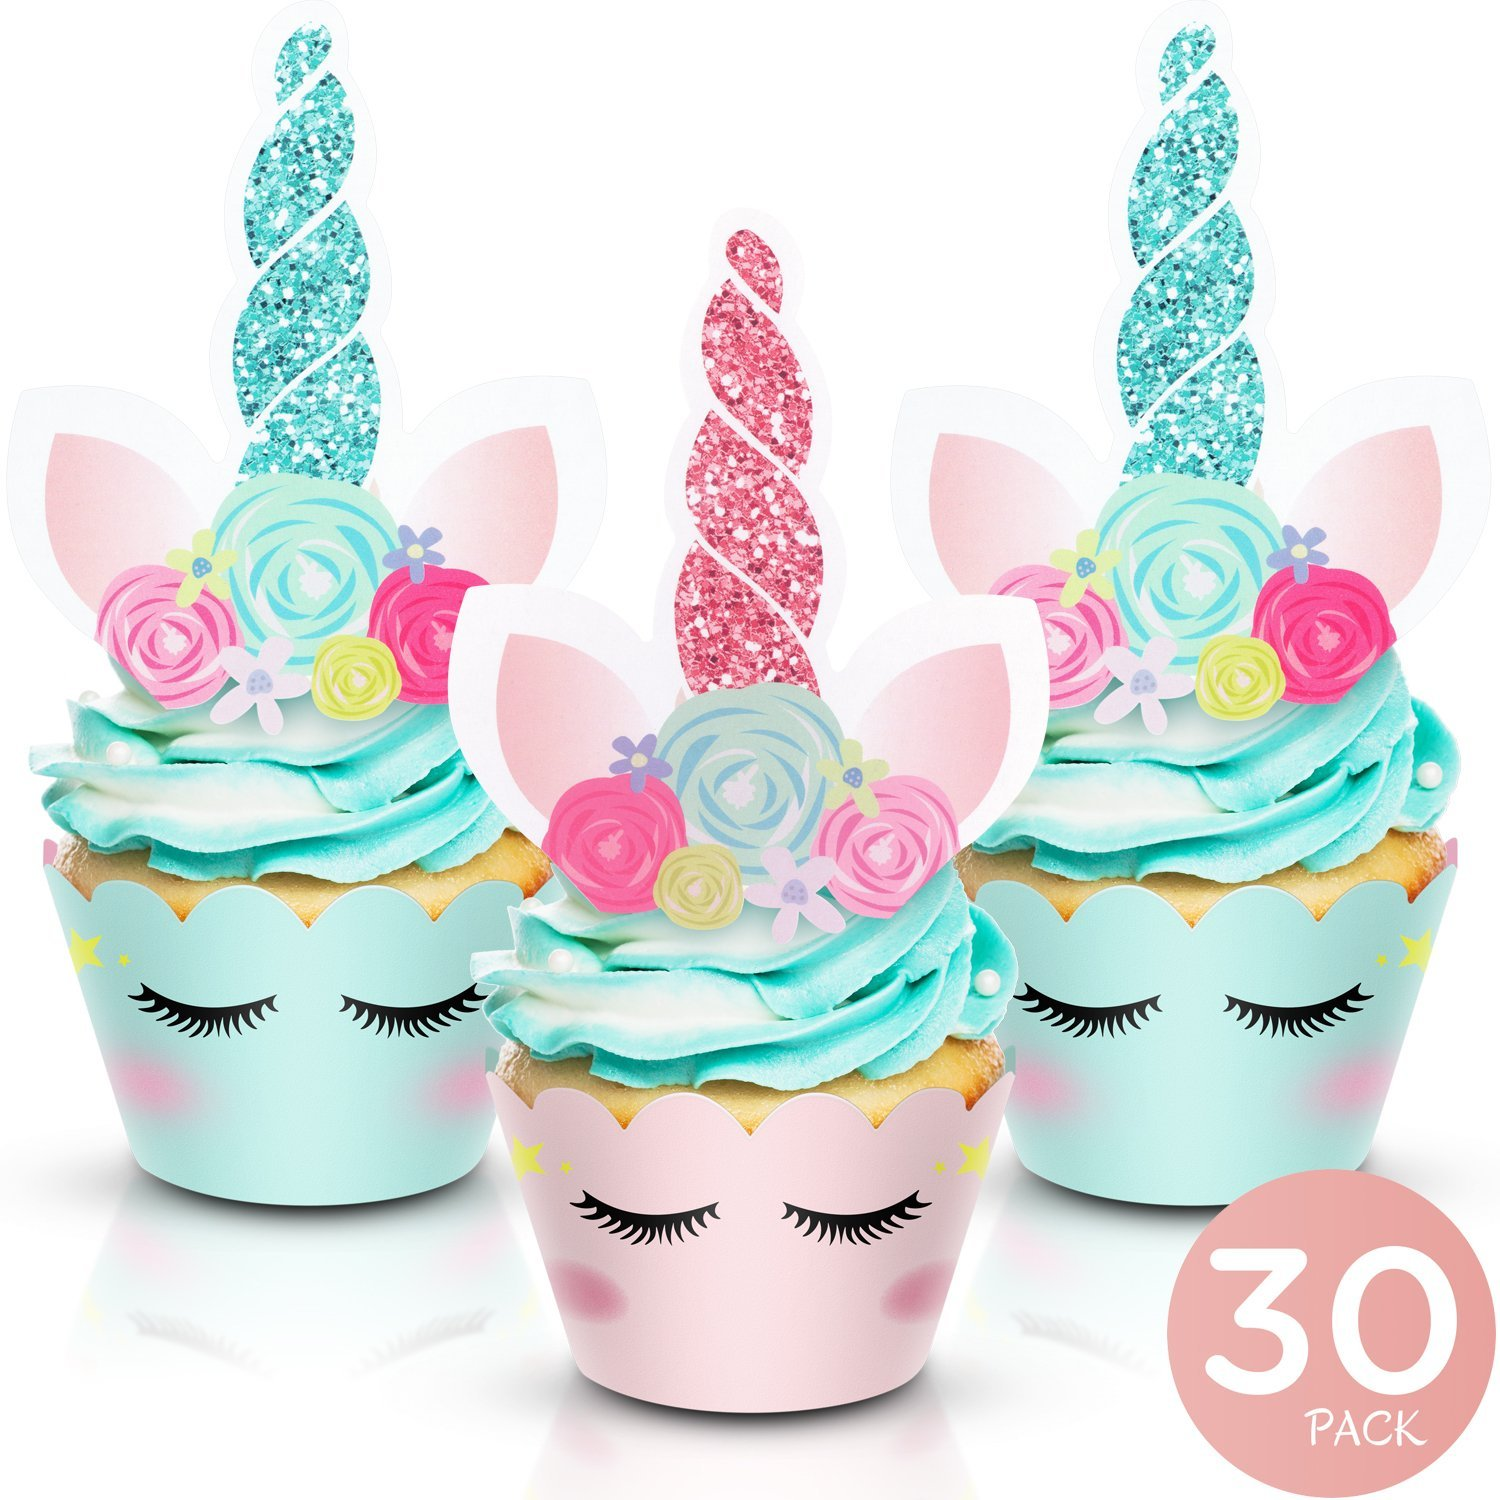 Unicorn Cupcake Toppers and Wrappers - Party Supplies for Birthday, Baby Shower, Valentine, Baby Shower - Double-Sided Glitter Design Cake Decorations. 30 Pairs